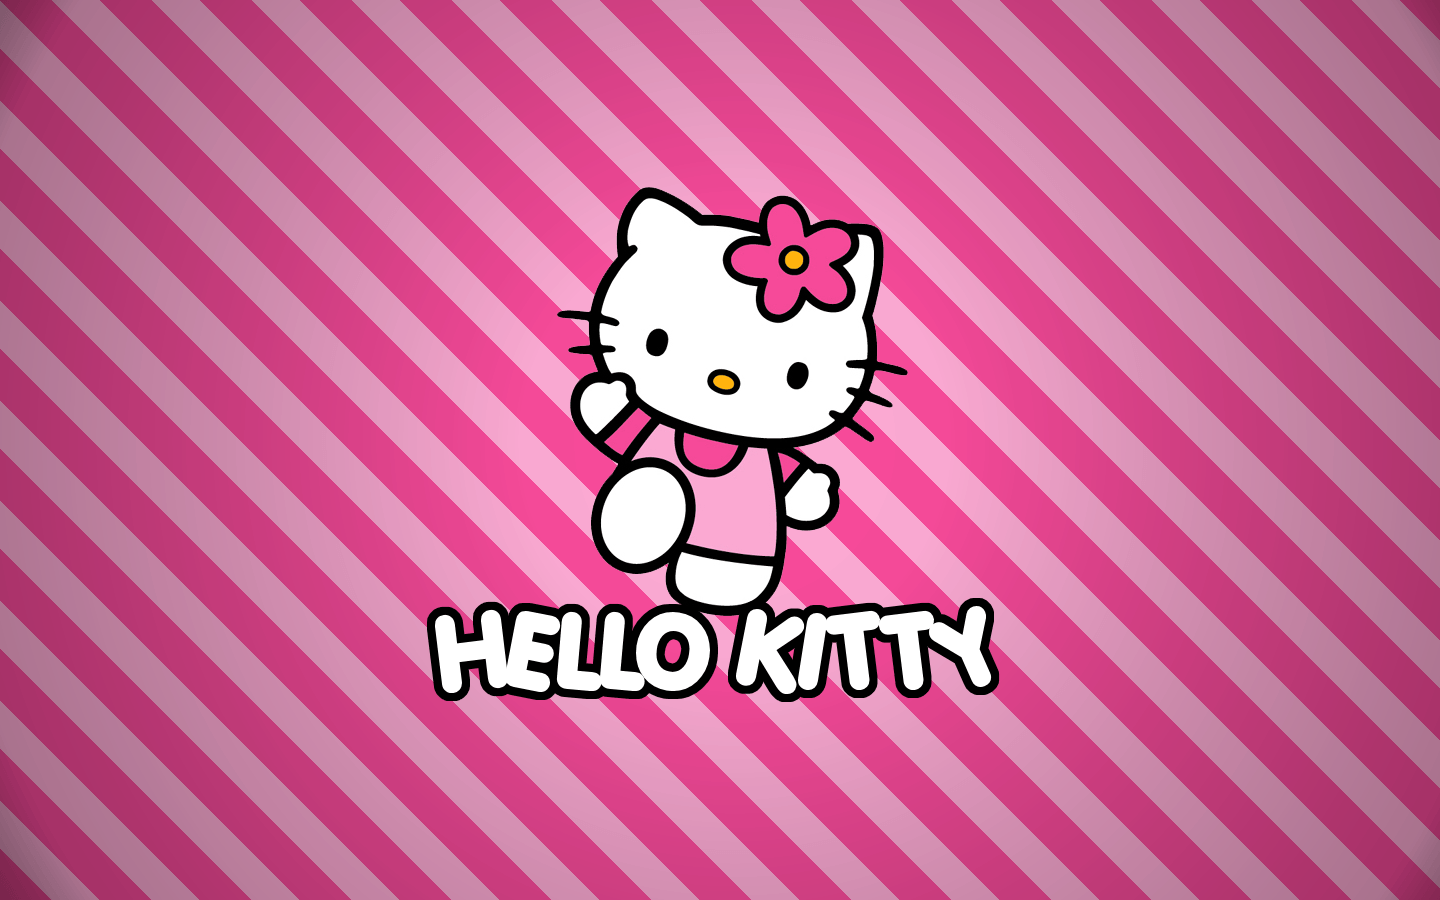 Most Inspiring Wallpaper Hello Kitty Full Hd - LQW6BIg  Image_75225.png